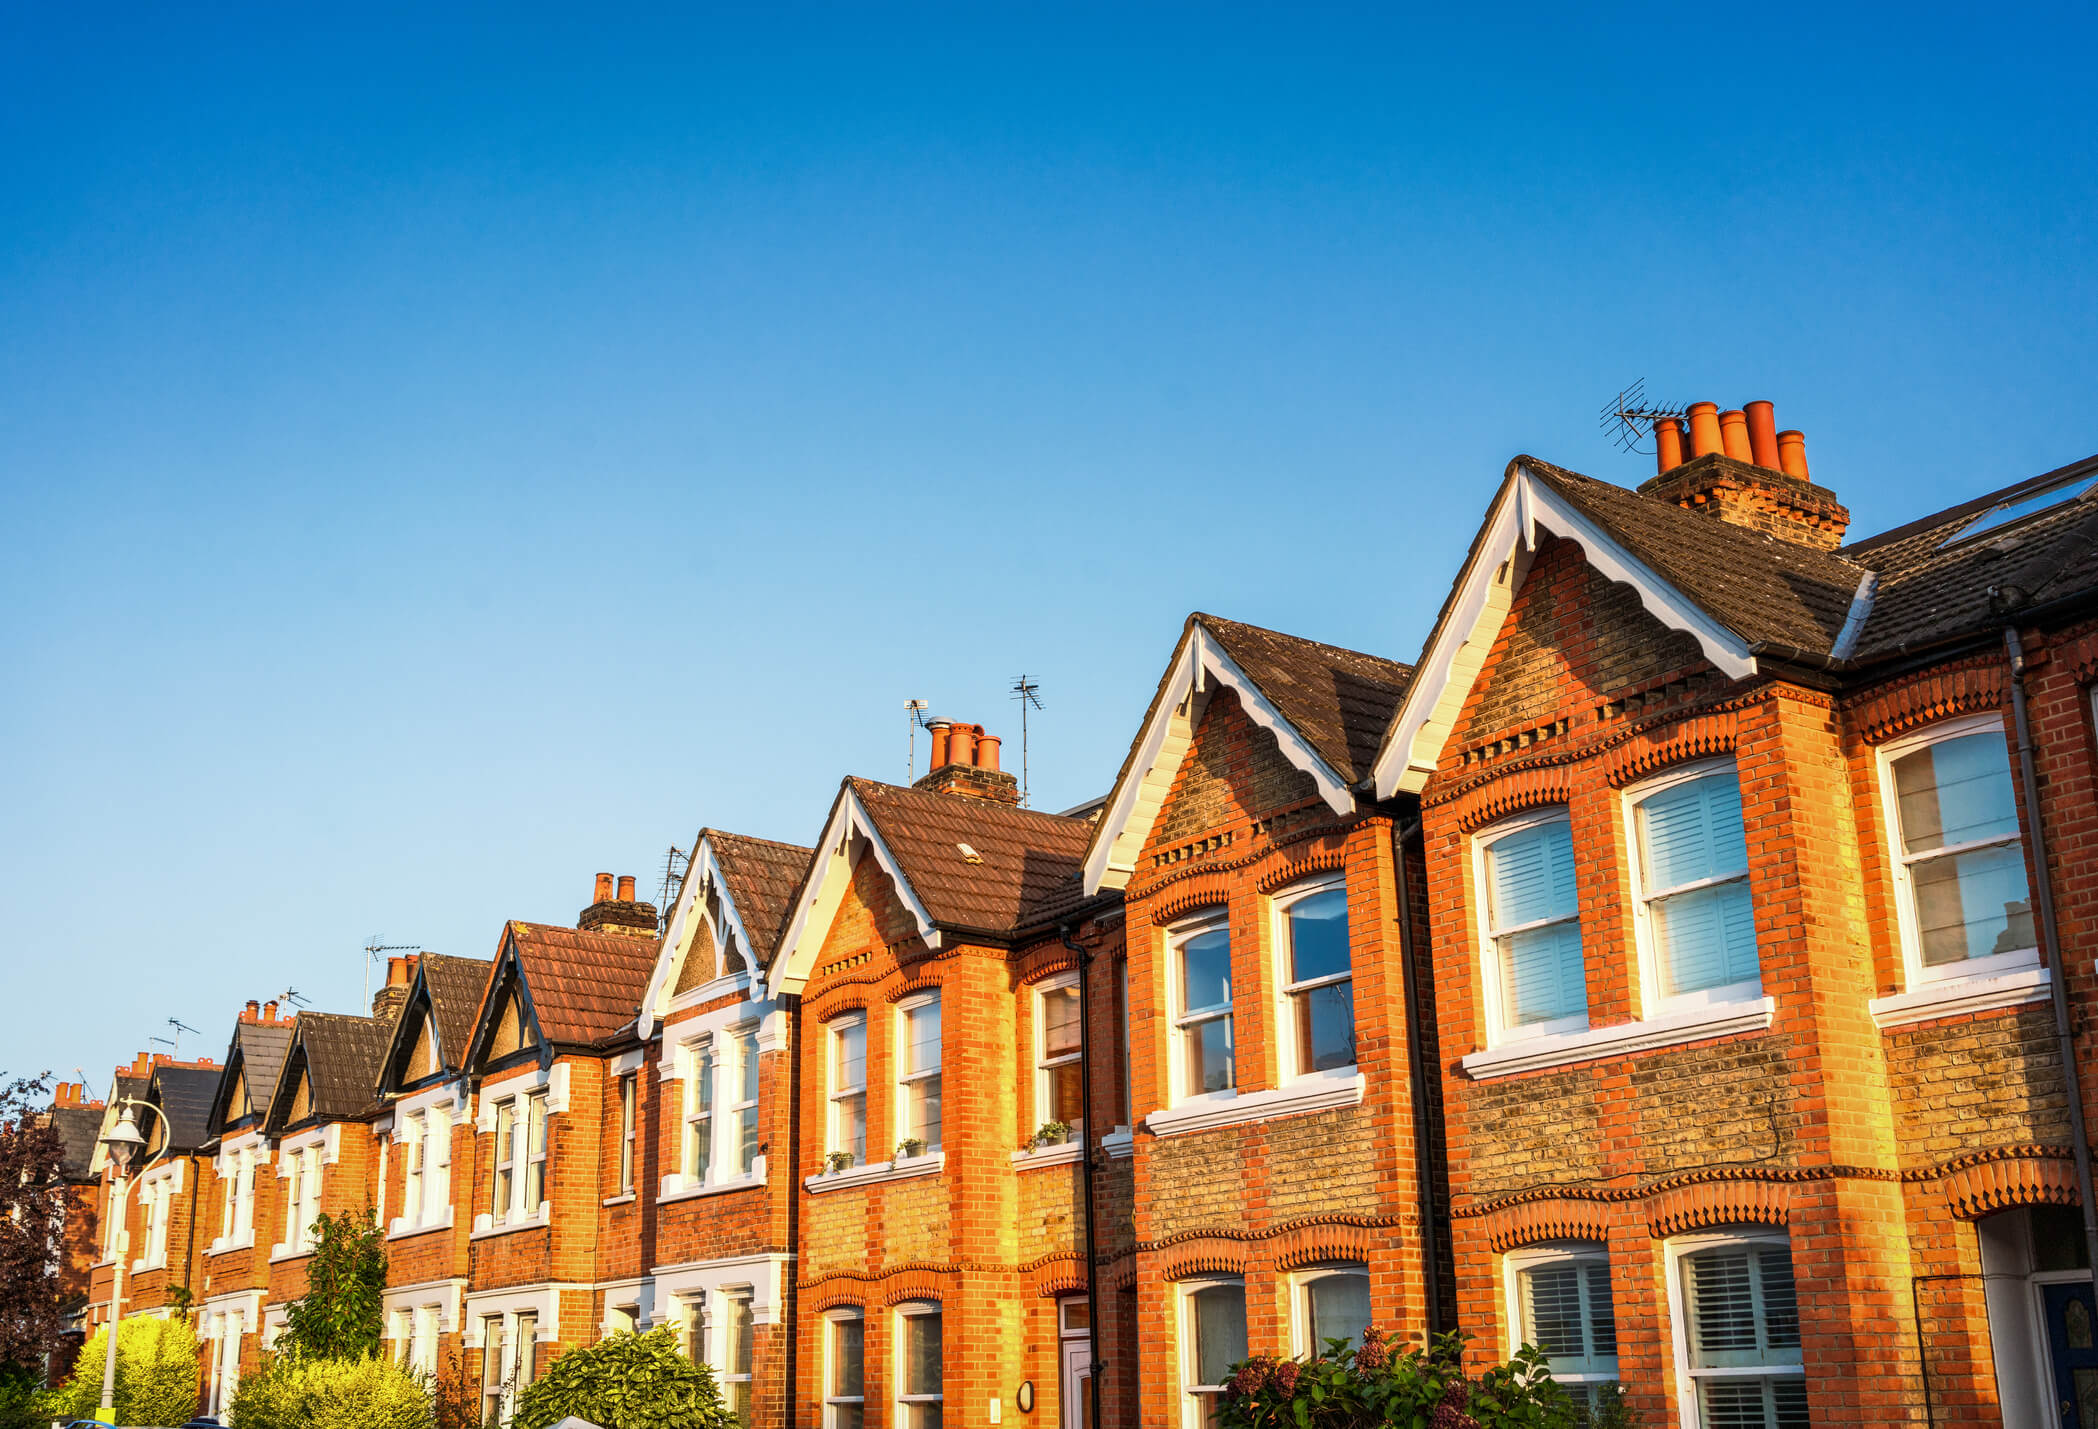 Terraced Victorian homes. Jukes Insurance Brokers can arrange insurance for properties like these.